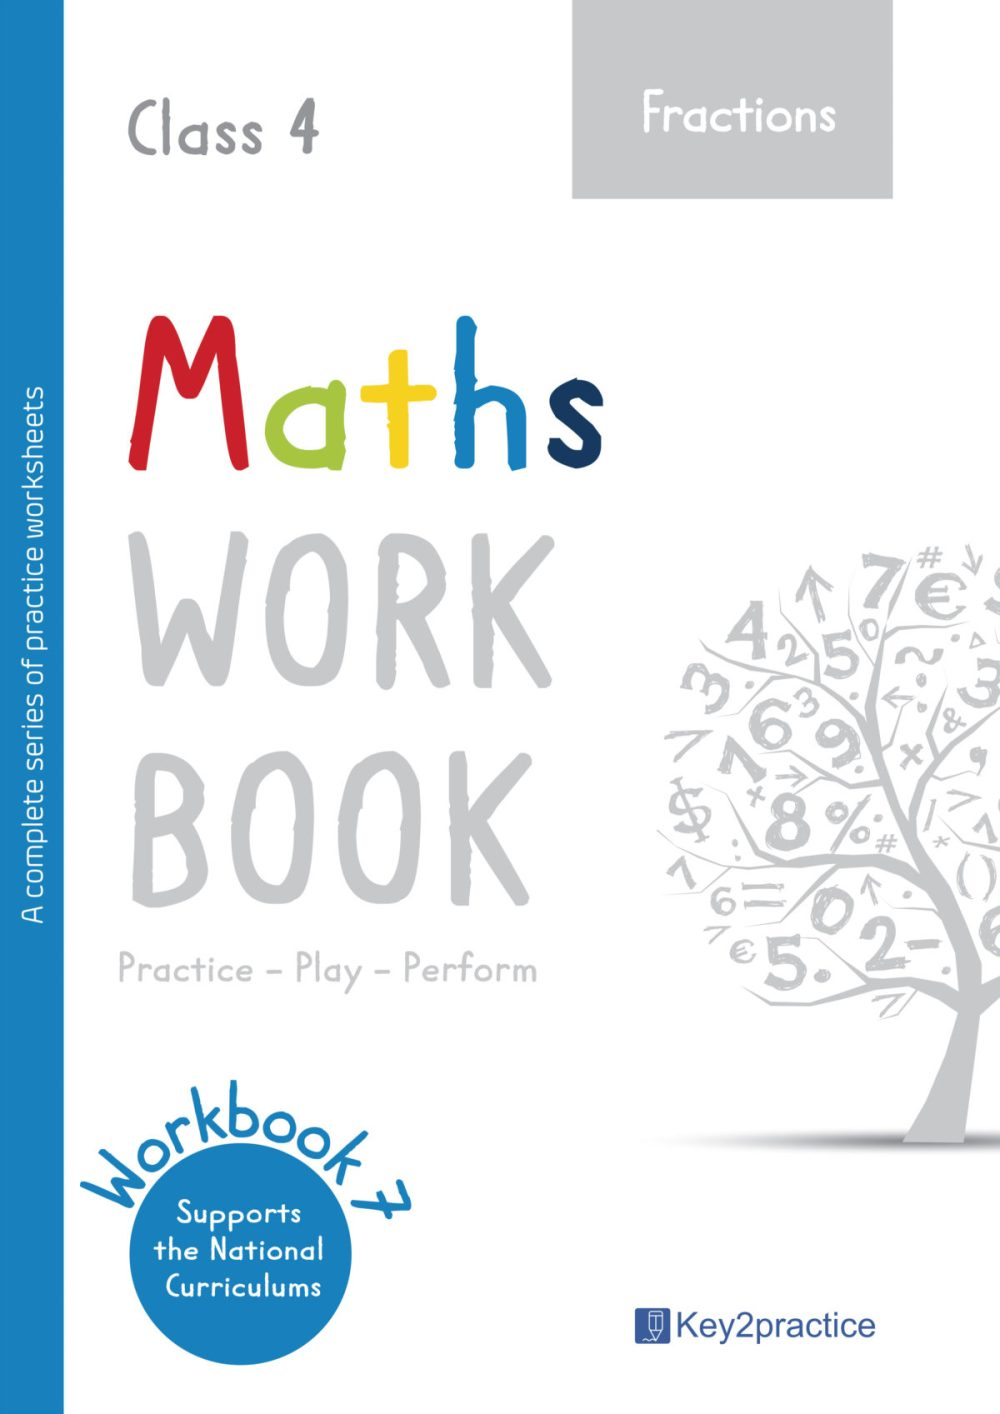 medium resolution of Grade 4 'Fractions' worksheets Maths - key2practice Workbooks